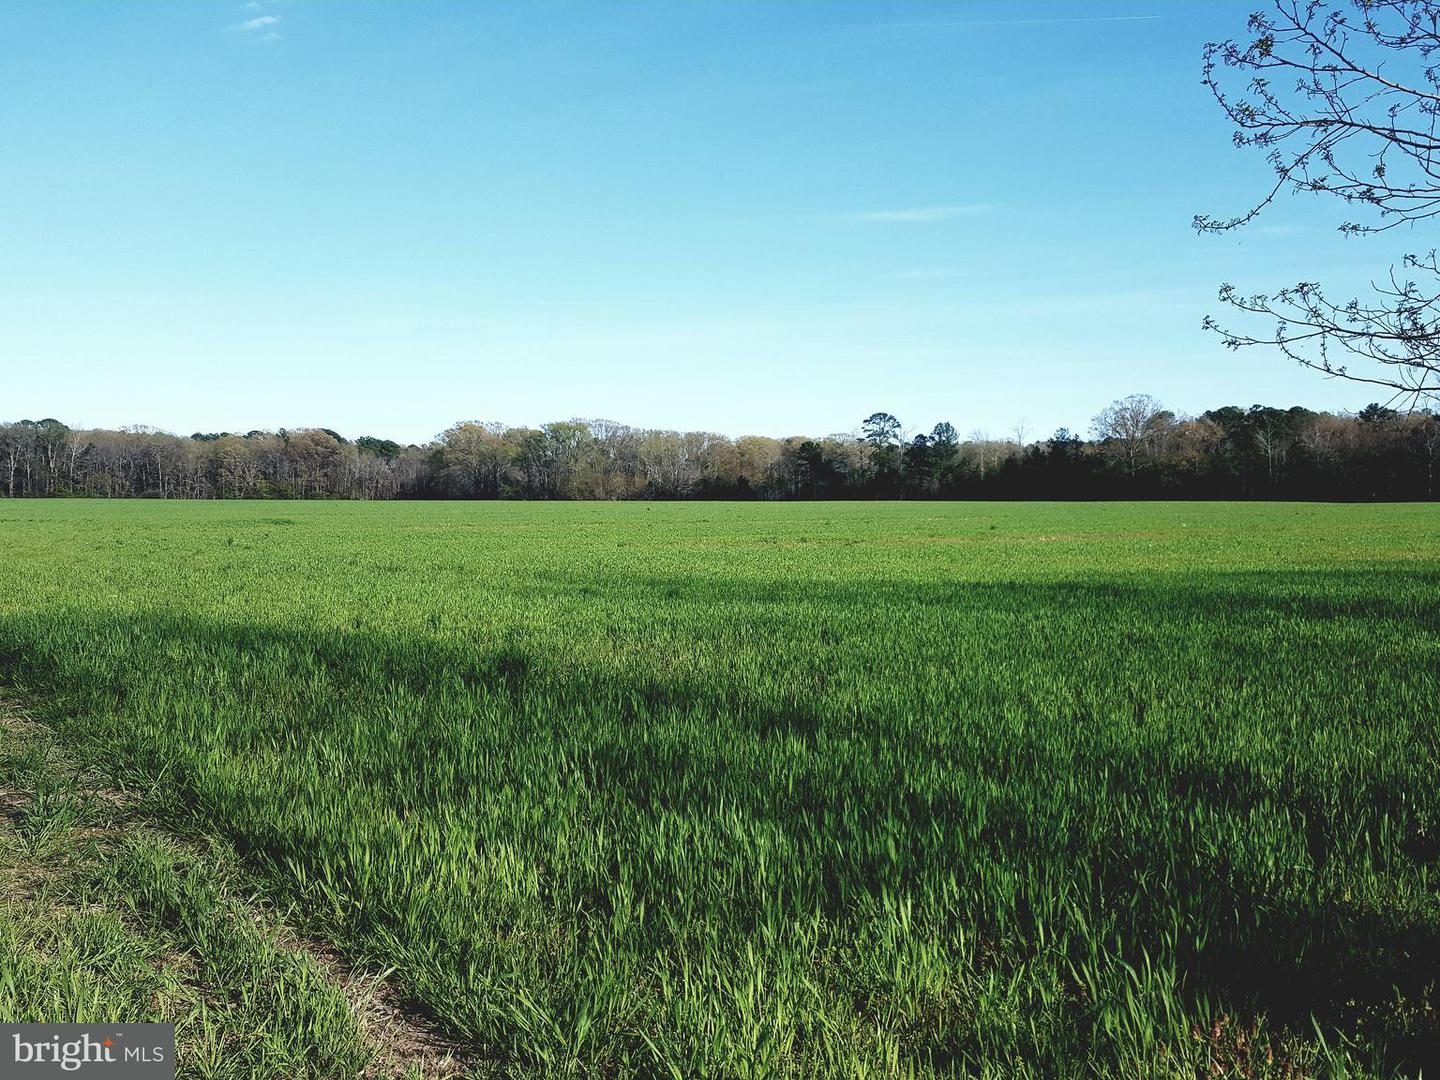 Land for Sale at 17250 Jutland Rd St. Inigoes, Maryland 20684 United States